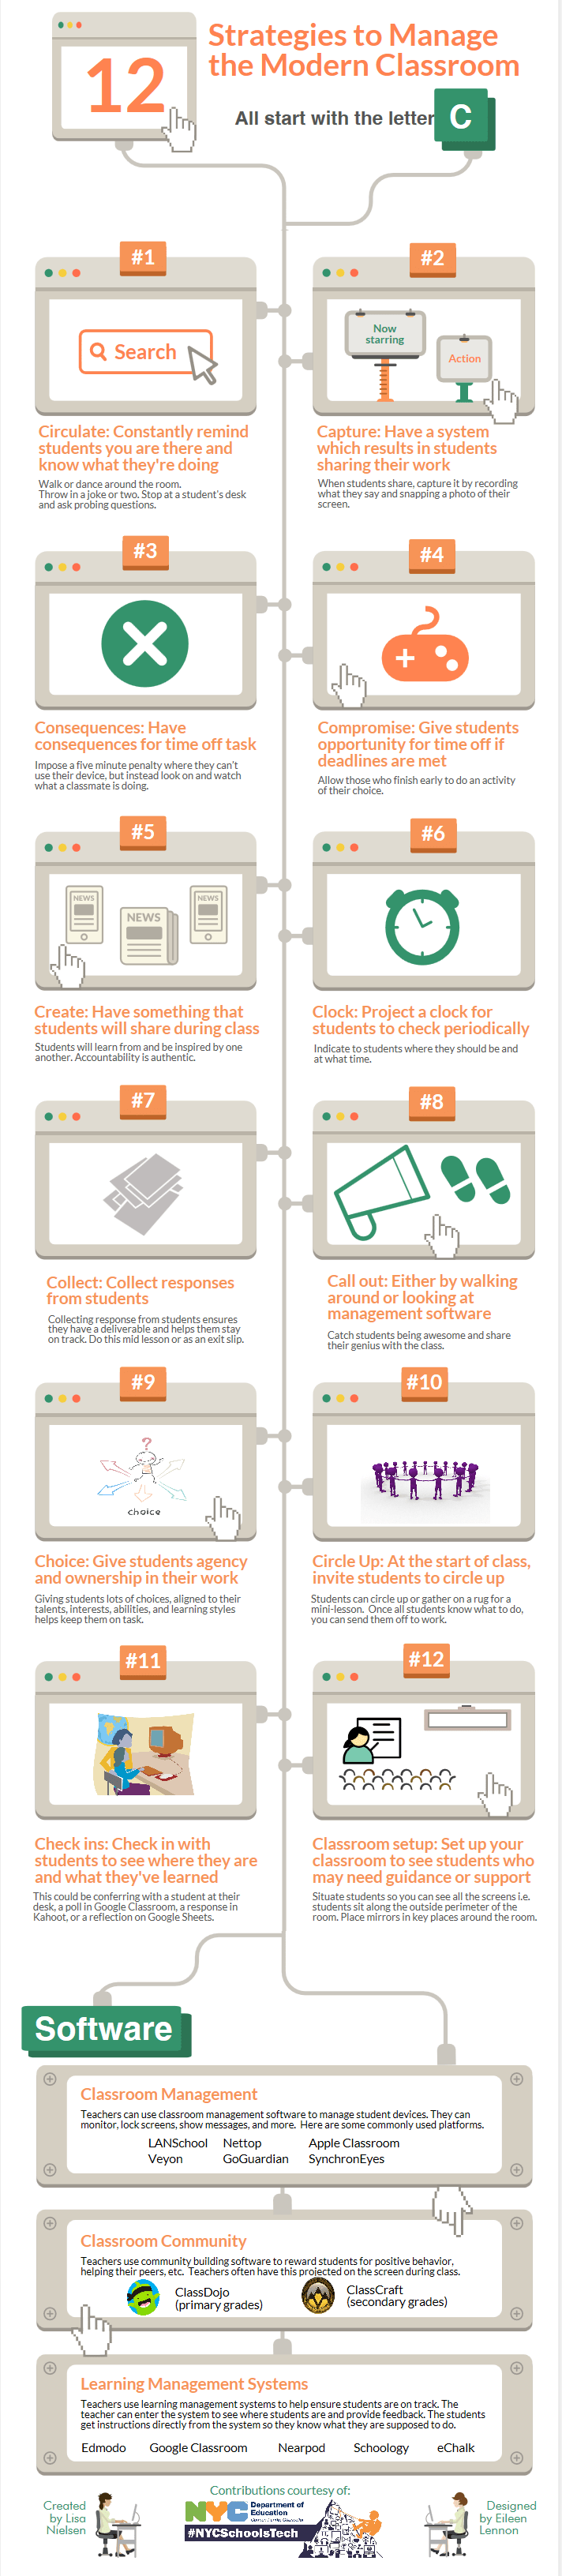 Modern Classroom Management Strategies : Strategies to manage the modern classroom infographic